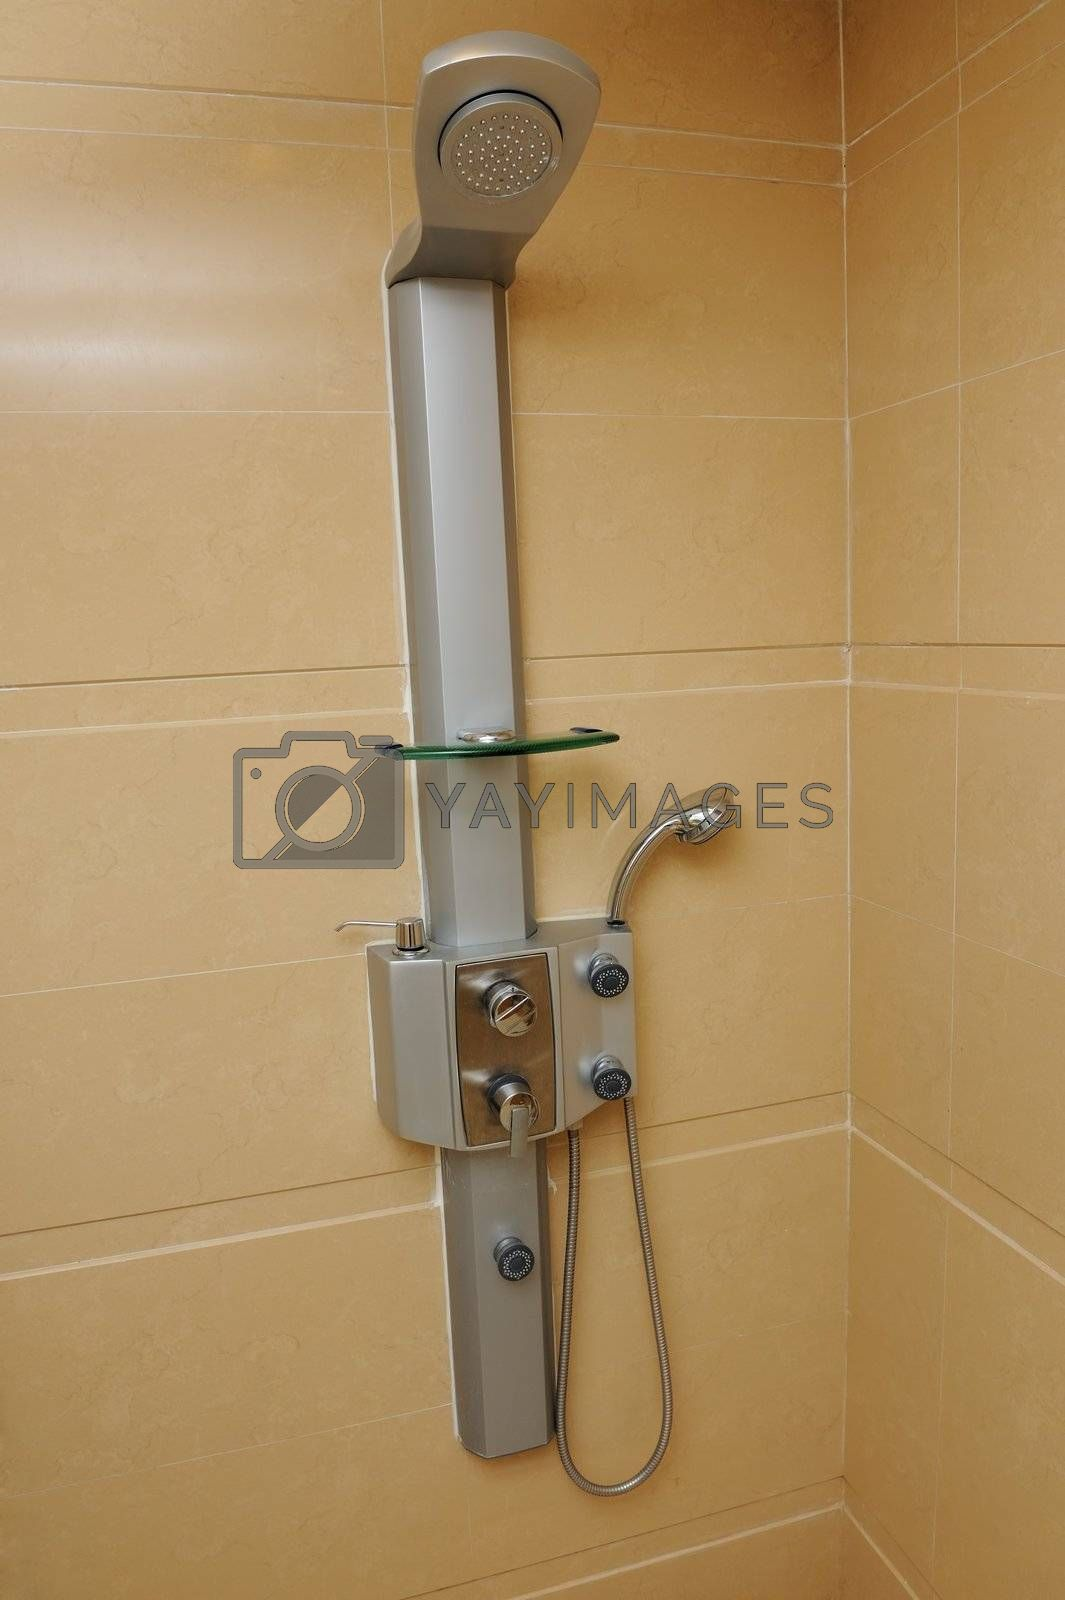 Shower head in the bathroom